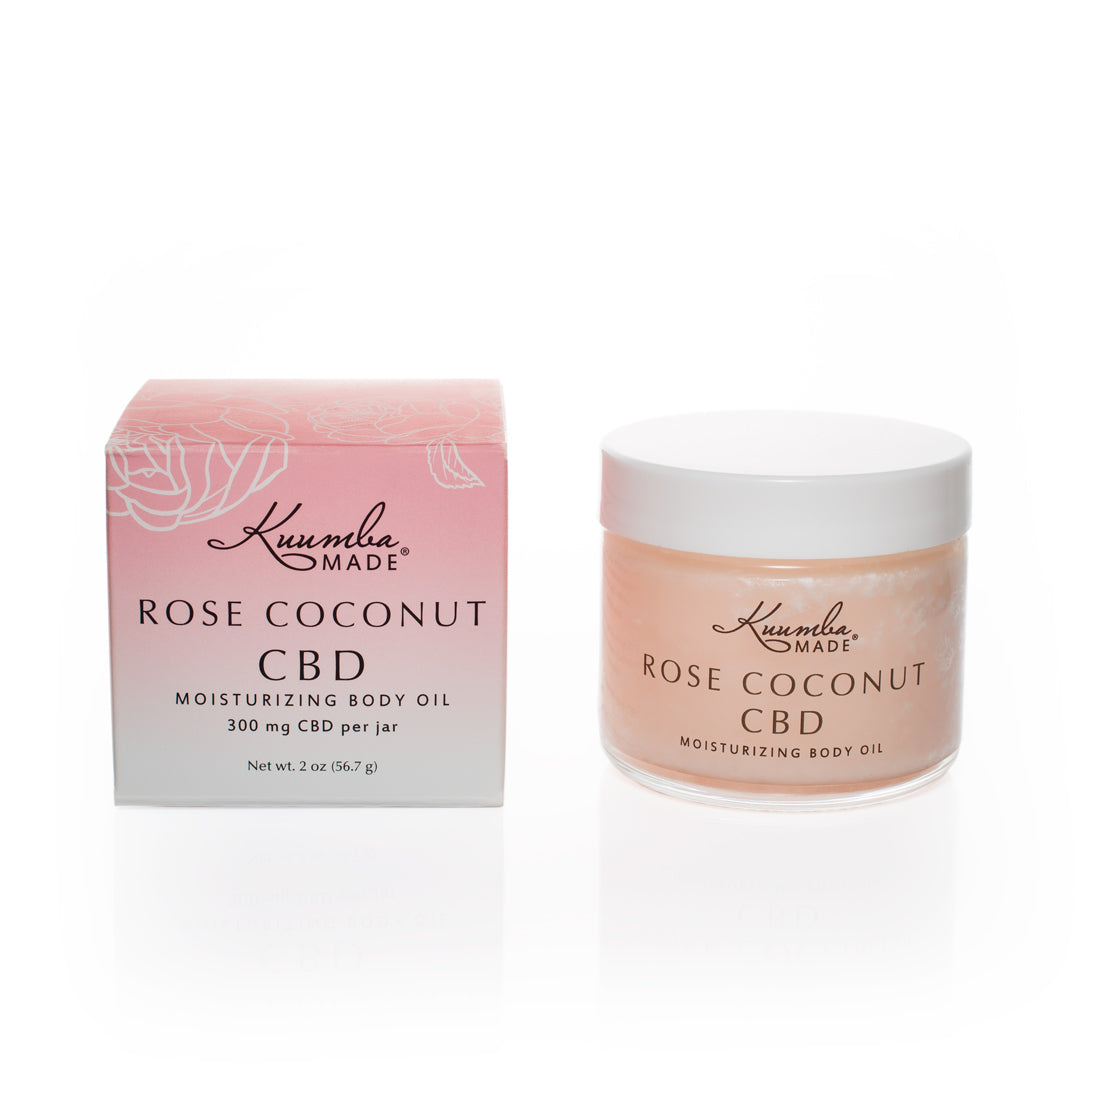 Kuumba Made CBD Rose Coconut Body Oil 2oz jar